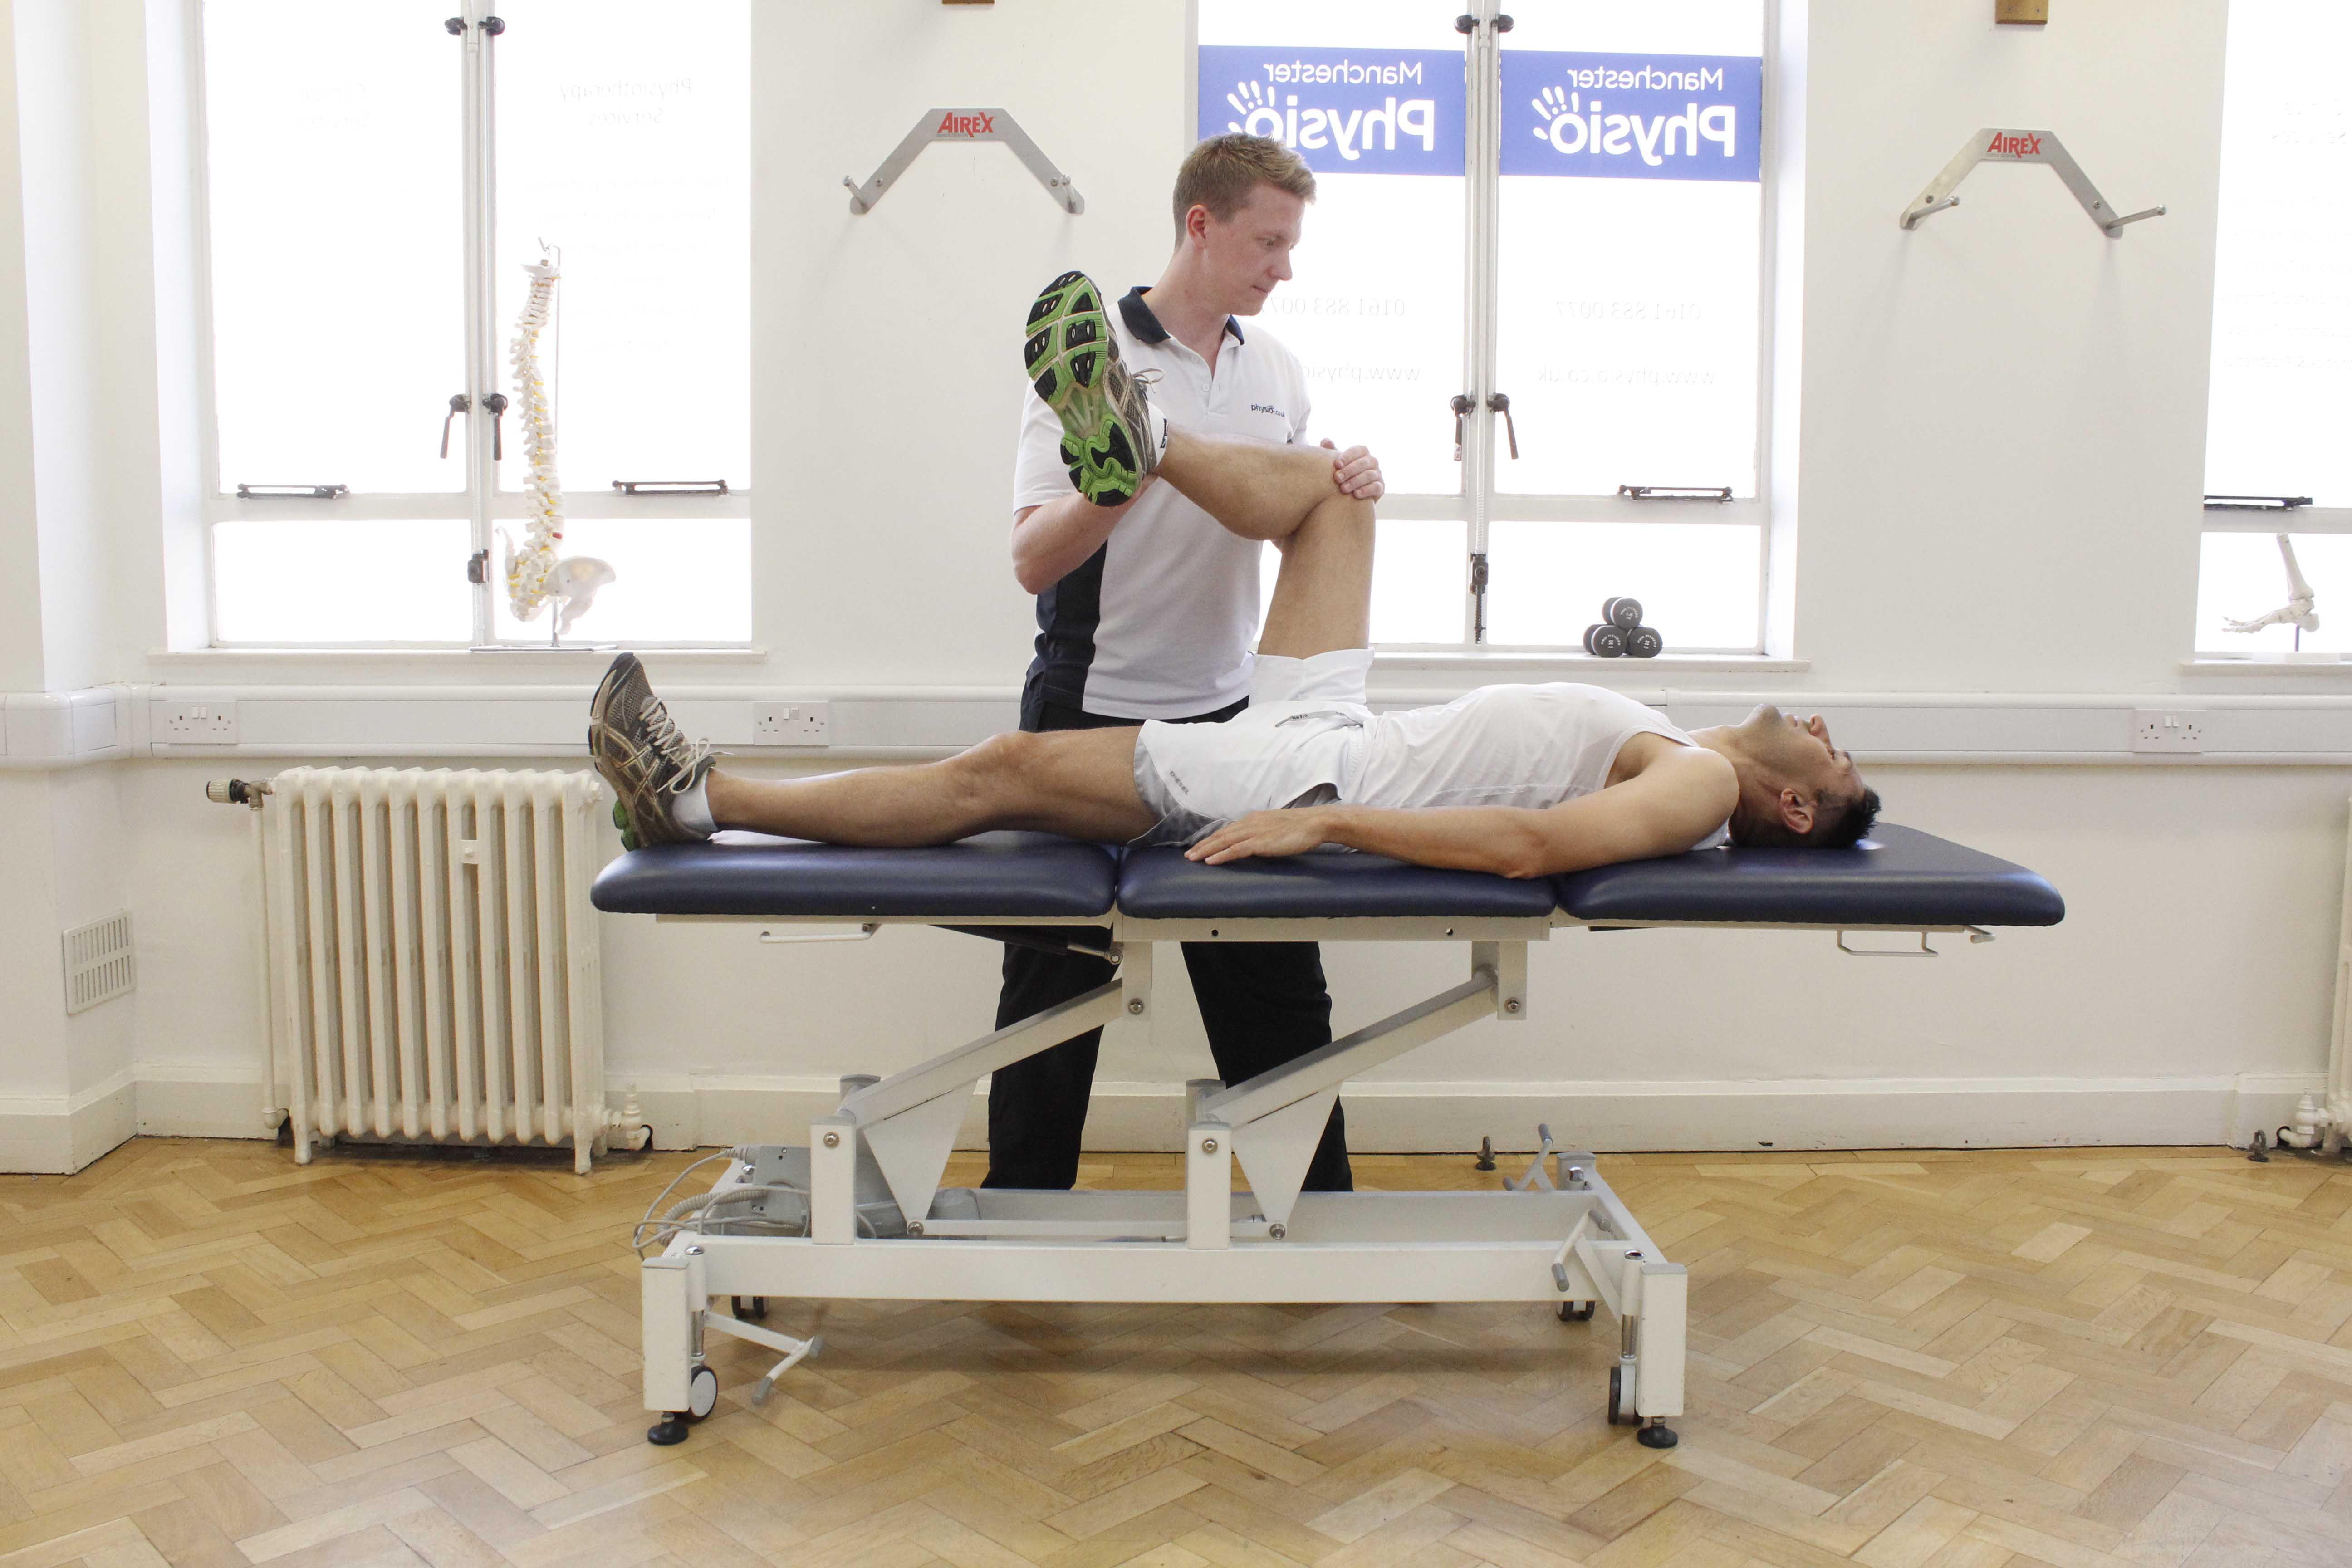 Experienced physiotherapist performing hip and knee stretches and mobilisations to reduce pain and muscle tone.